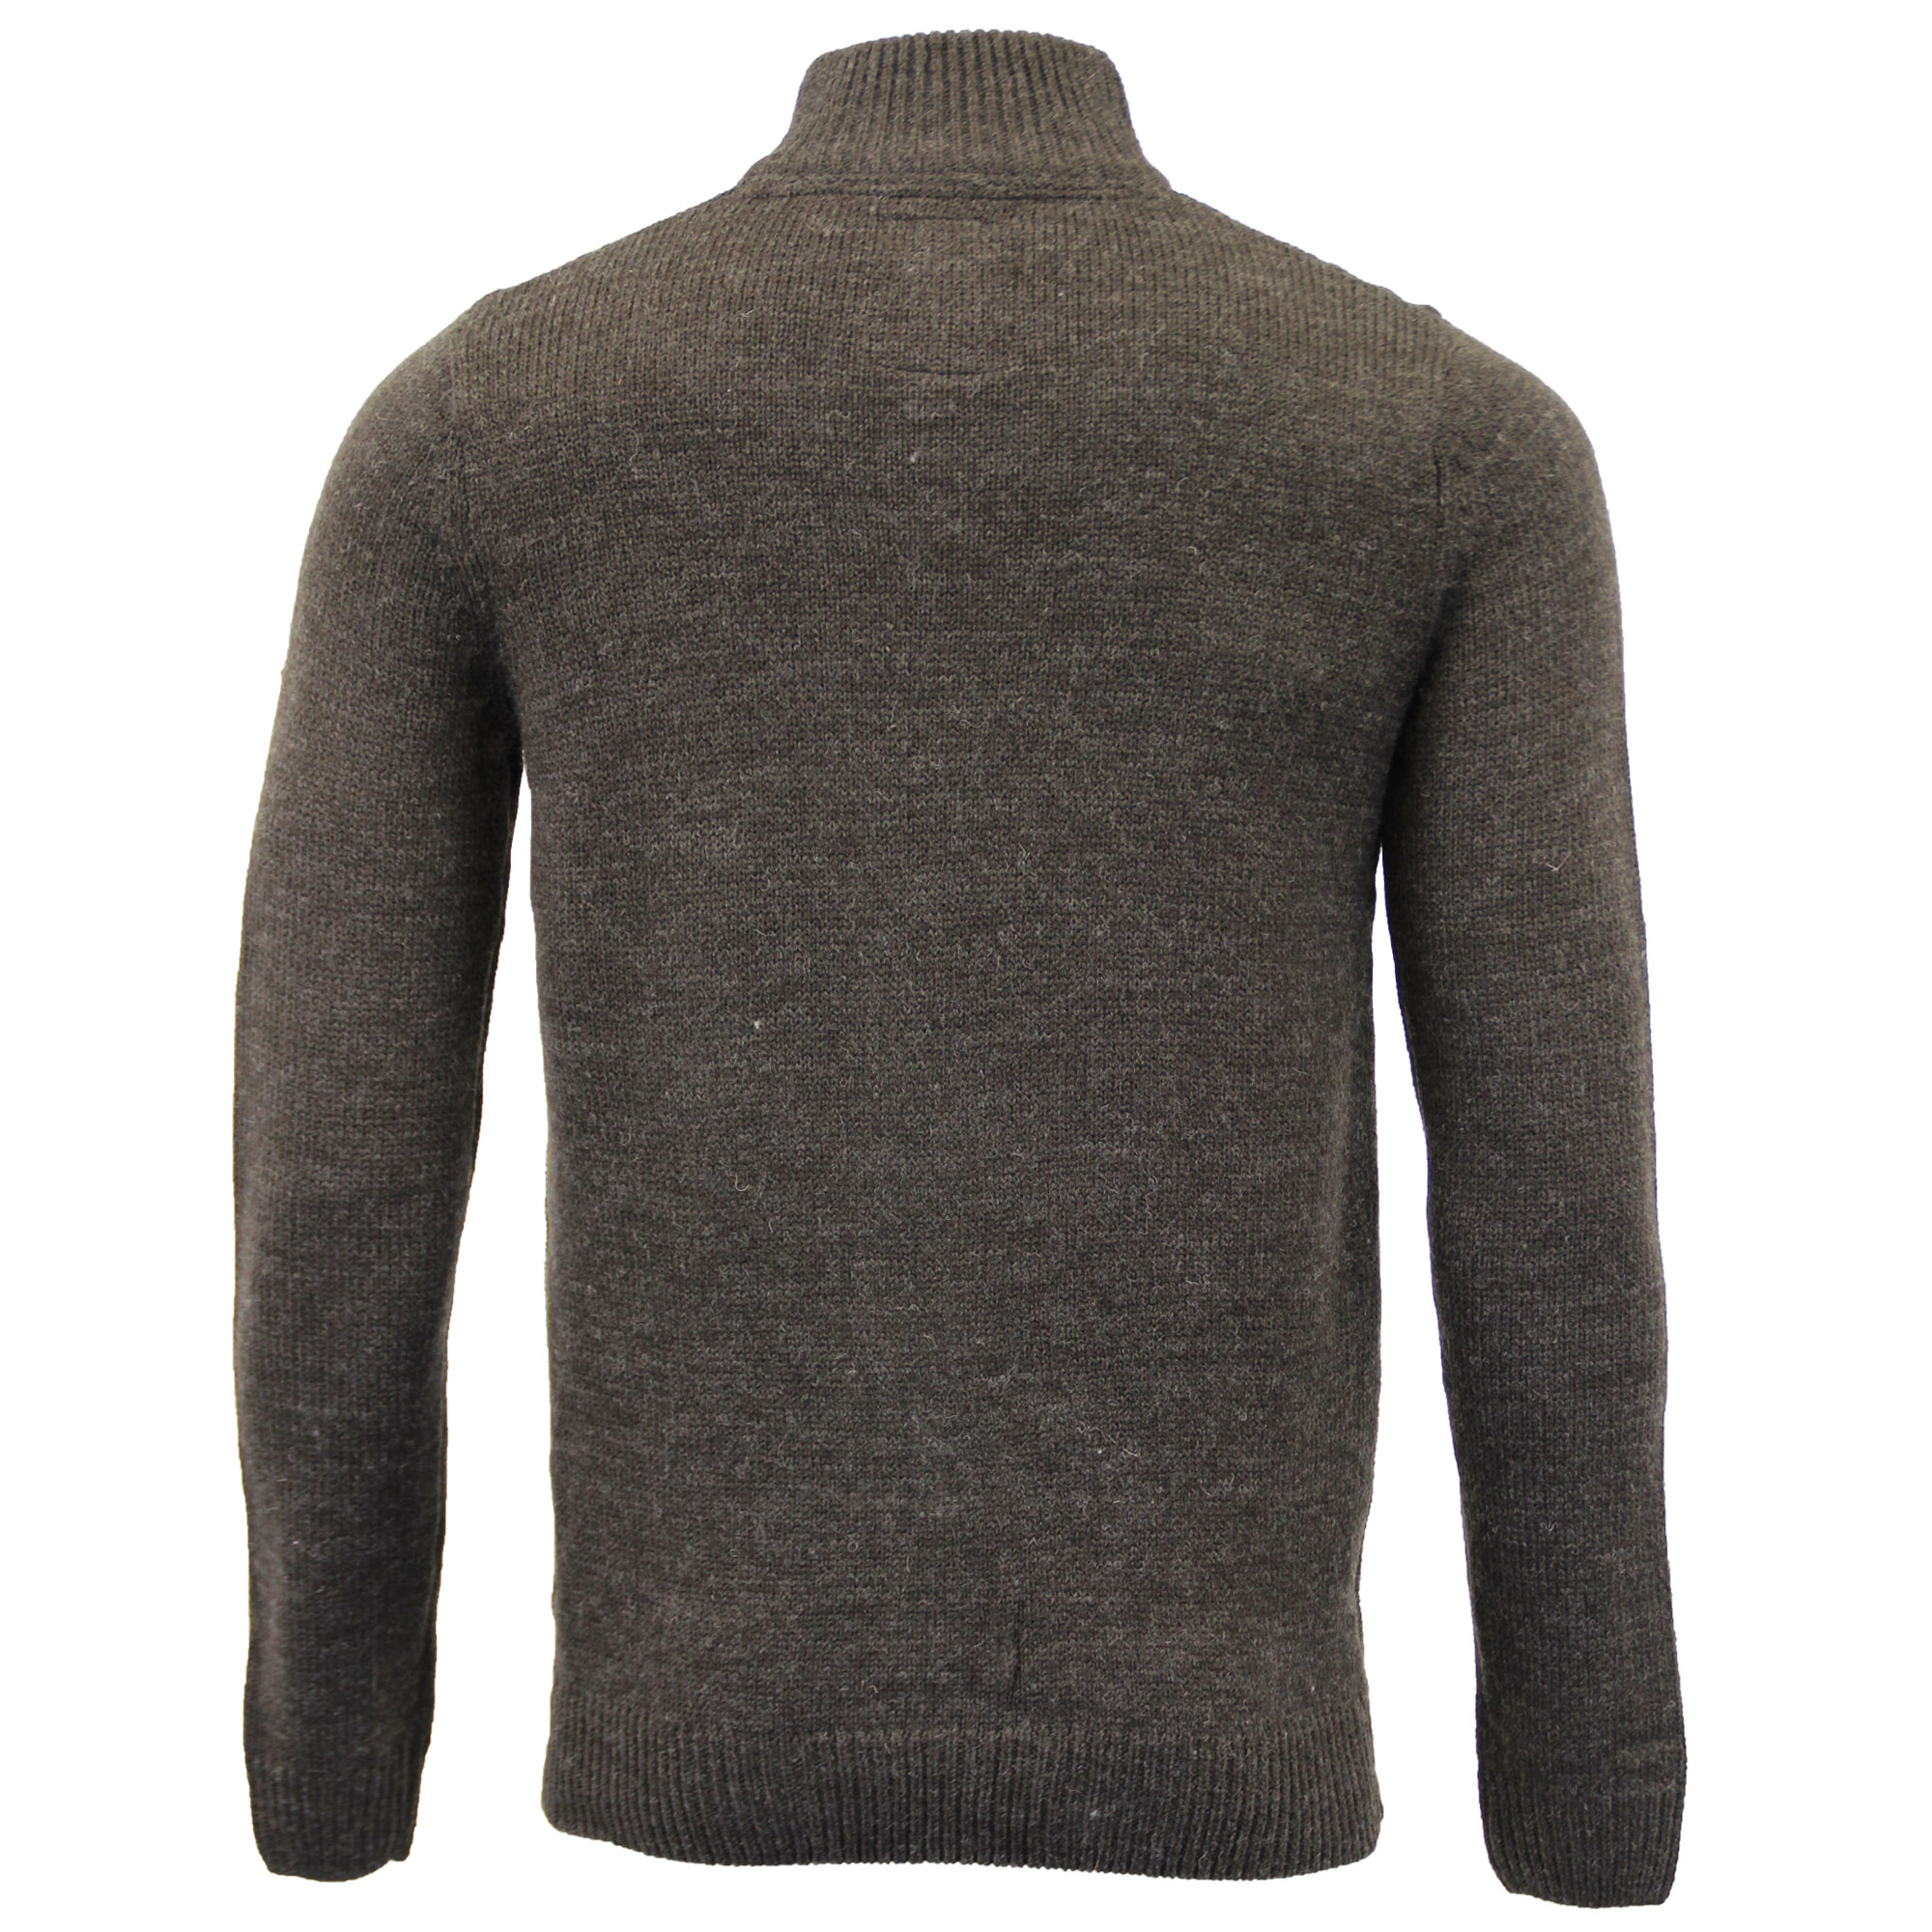 Mens-Wool-Mix-Jumper-Threadbare-Knitted-Sweater-Pullover-Top-Chunky-Zip-Winter thumbnail 15